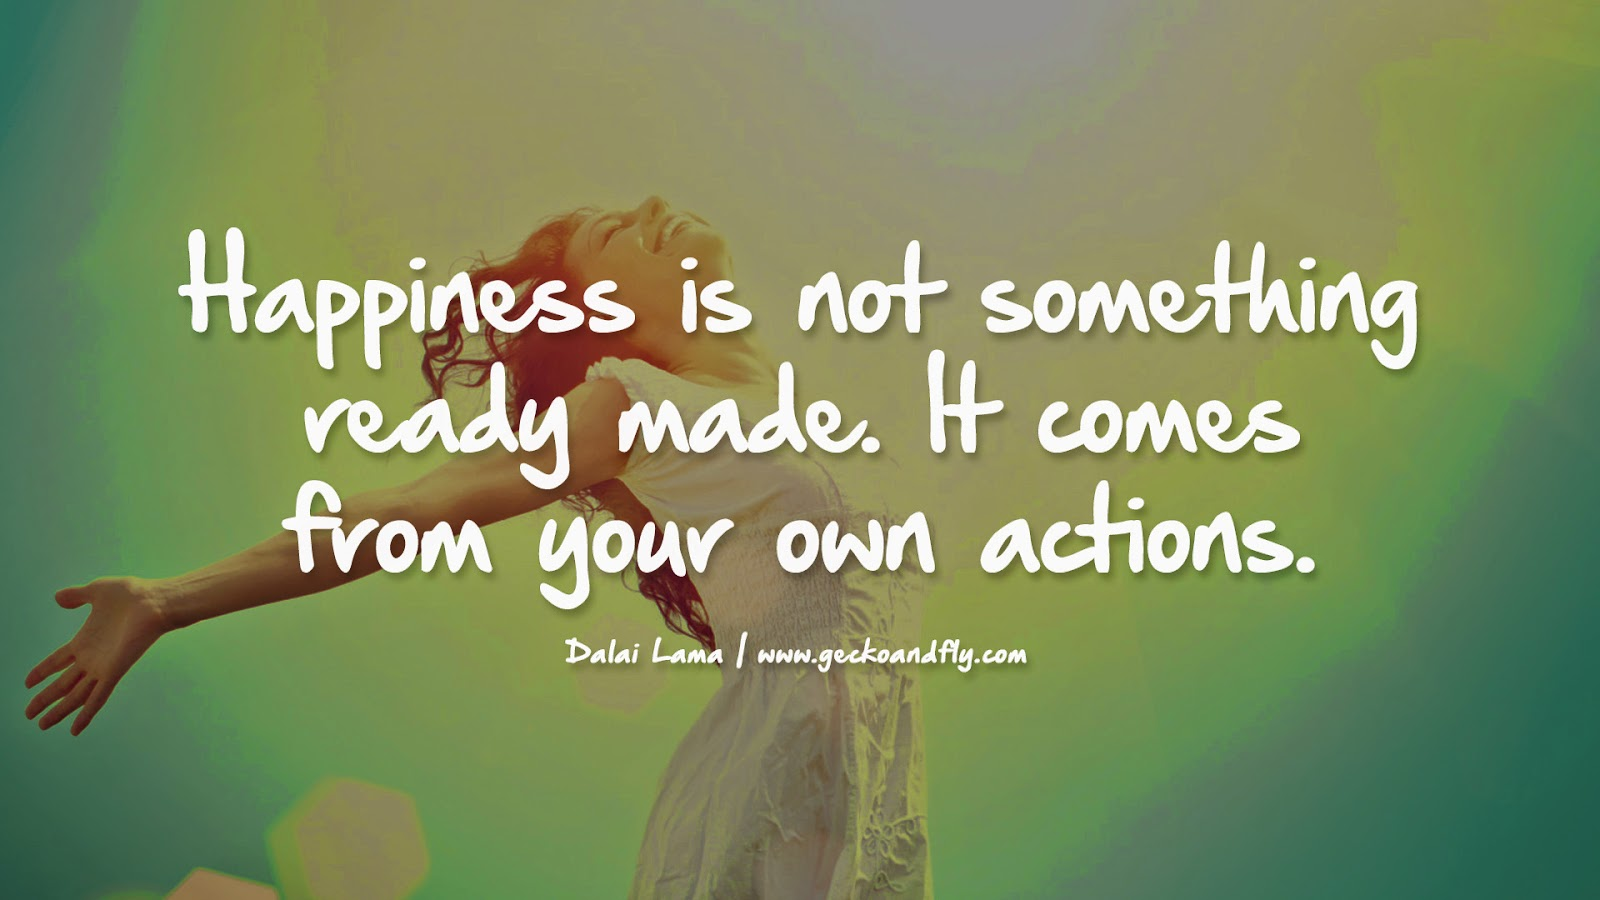 Happiness Quotes From Famous People Quotesgram. Summer Quotes Tan. Thank You Quotes Hindi. Crush Quotes Apk. Work Quotes Customer Service. God Quotes Pictures Tumblr. Trust Gaining Quotes. Marilyn Monroe Quotes Images. Work Environment Quotes